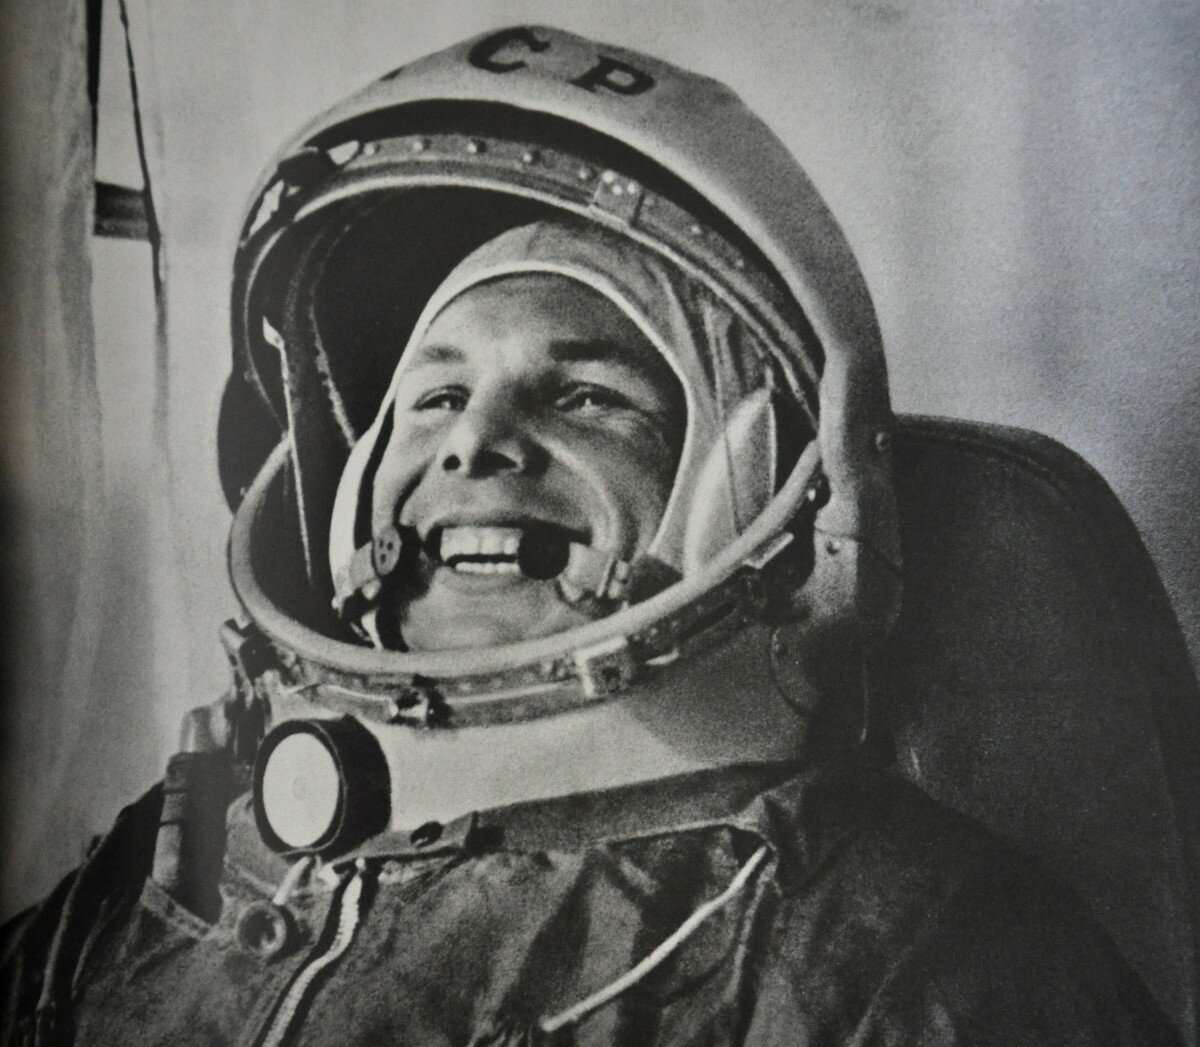 Communist In Space: Yuri Gagarin In the Headlines of Foreign Press